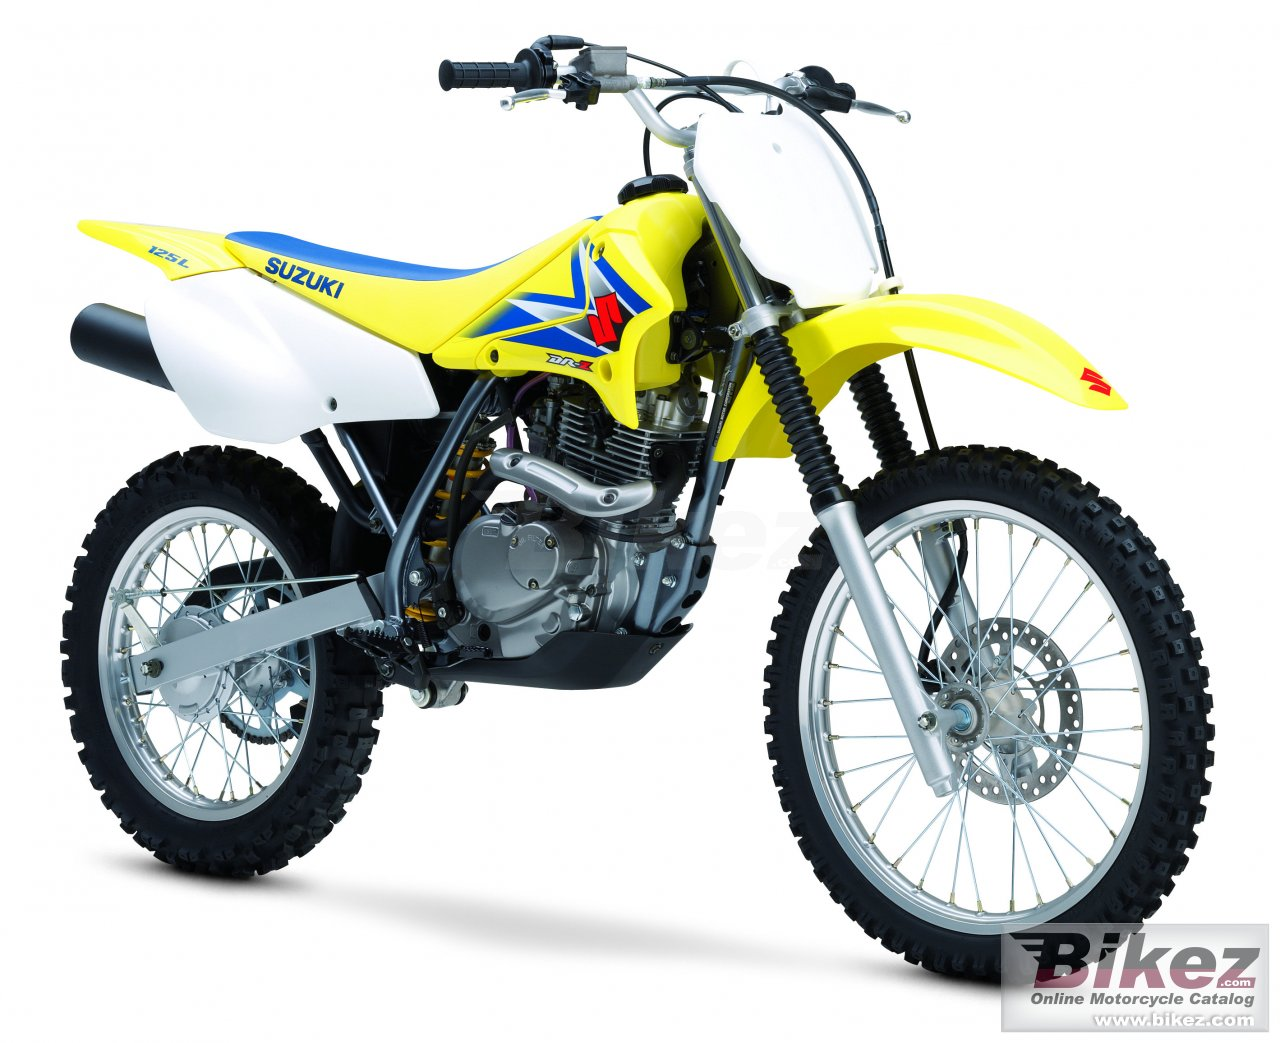 Big Suzuki dr-z 125 l picture and wallpaper from Bikez.com